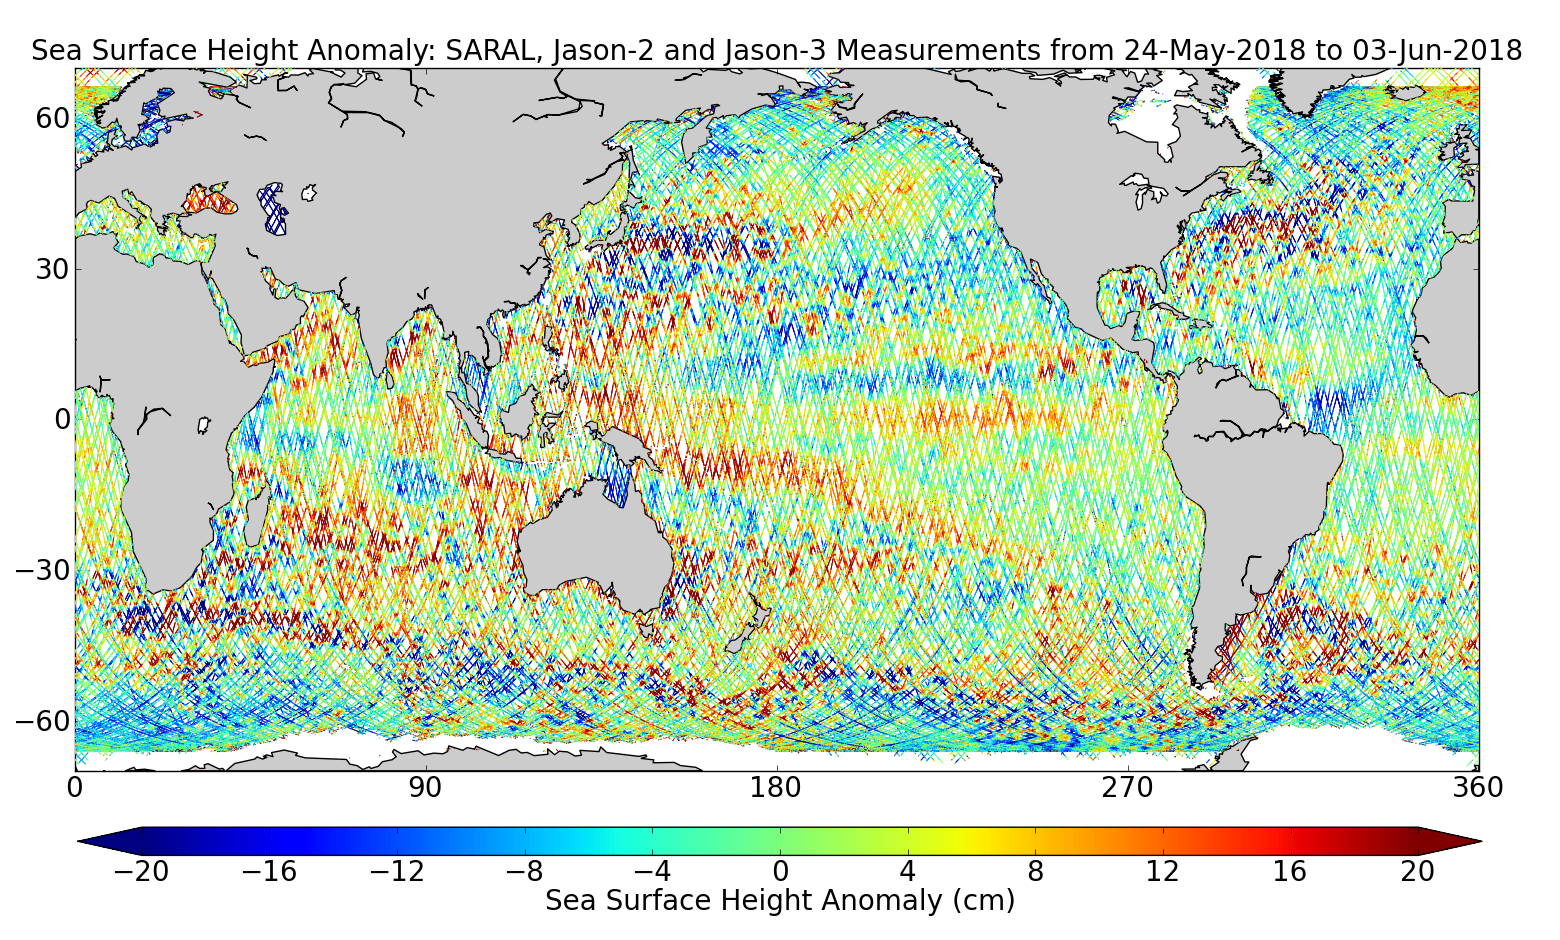 Sea Surface Height Anomaly: SARAL, Jason-2 and Jason-3 Measurements from 24-May-2018 to 03-Jun-2018